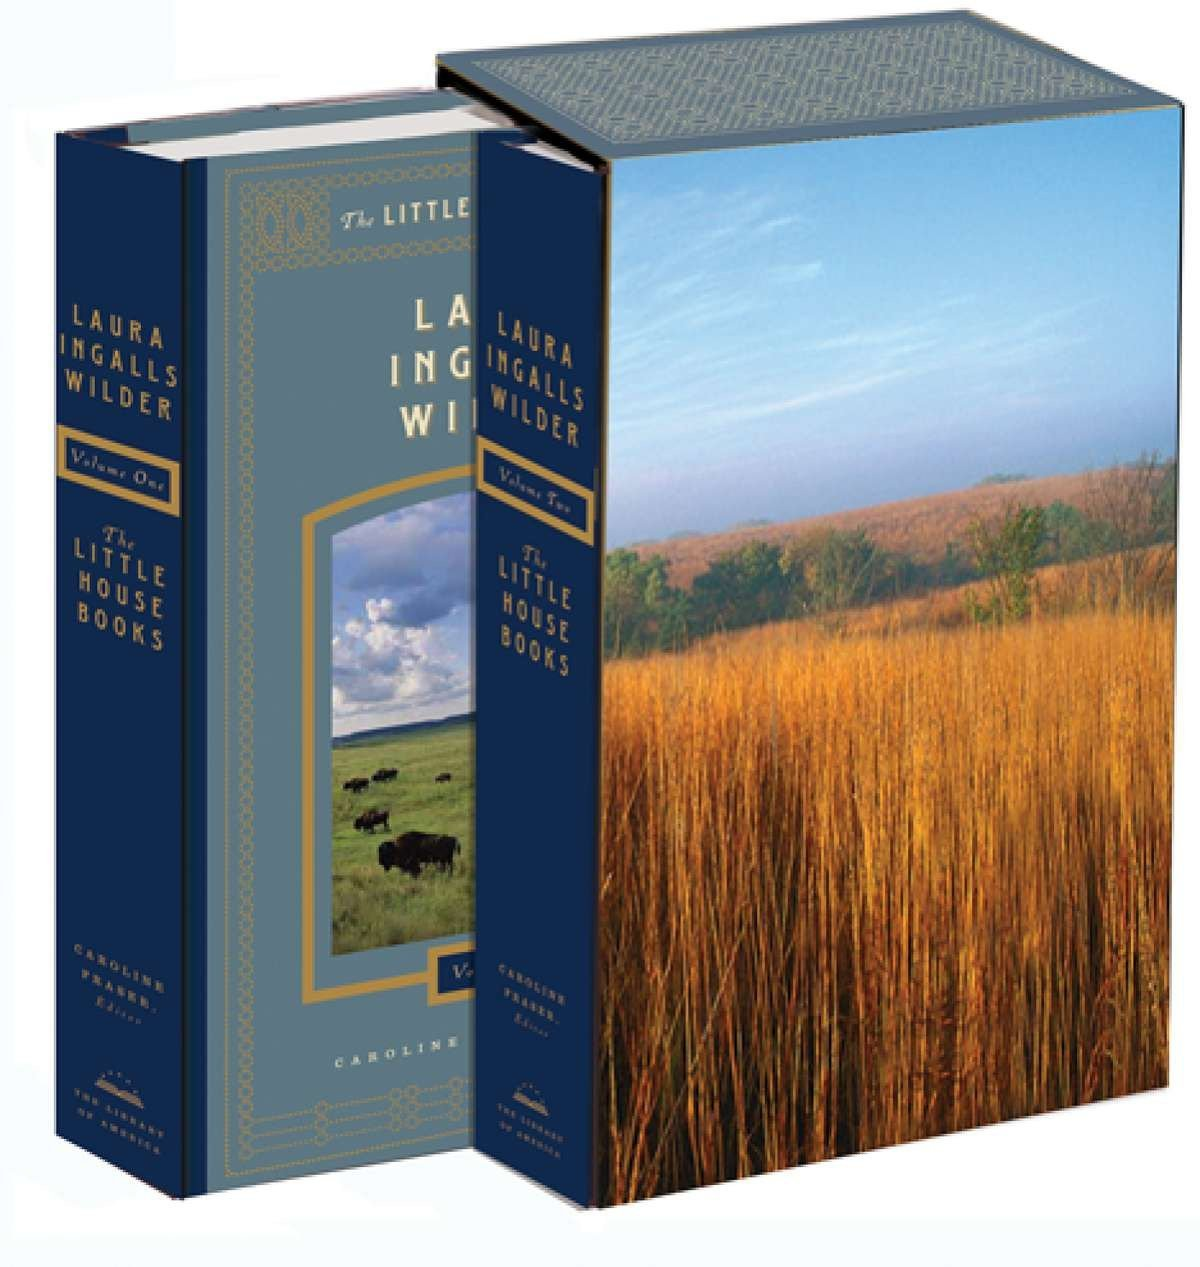 The Little House Books (2 Volume Set) by Library of America